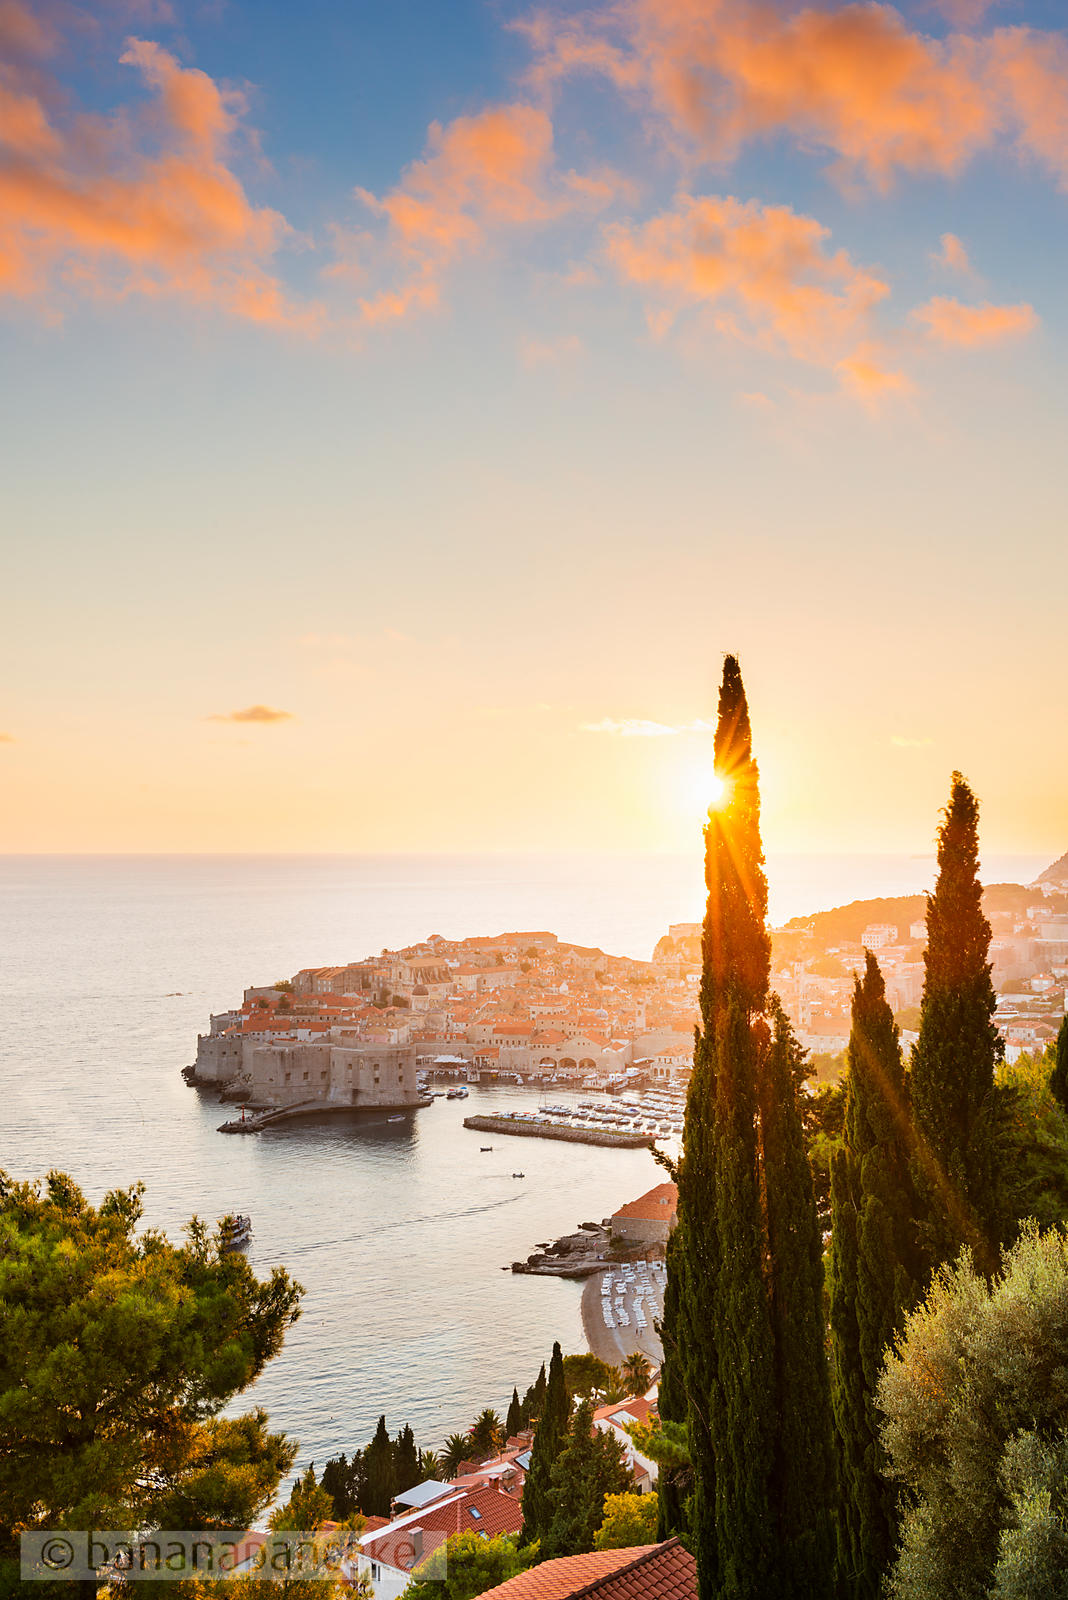 Sunset over the Old Town, Dubrovnik - BP4746